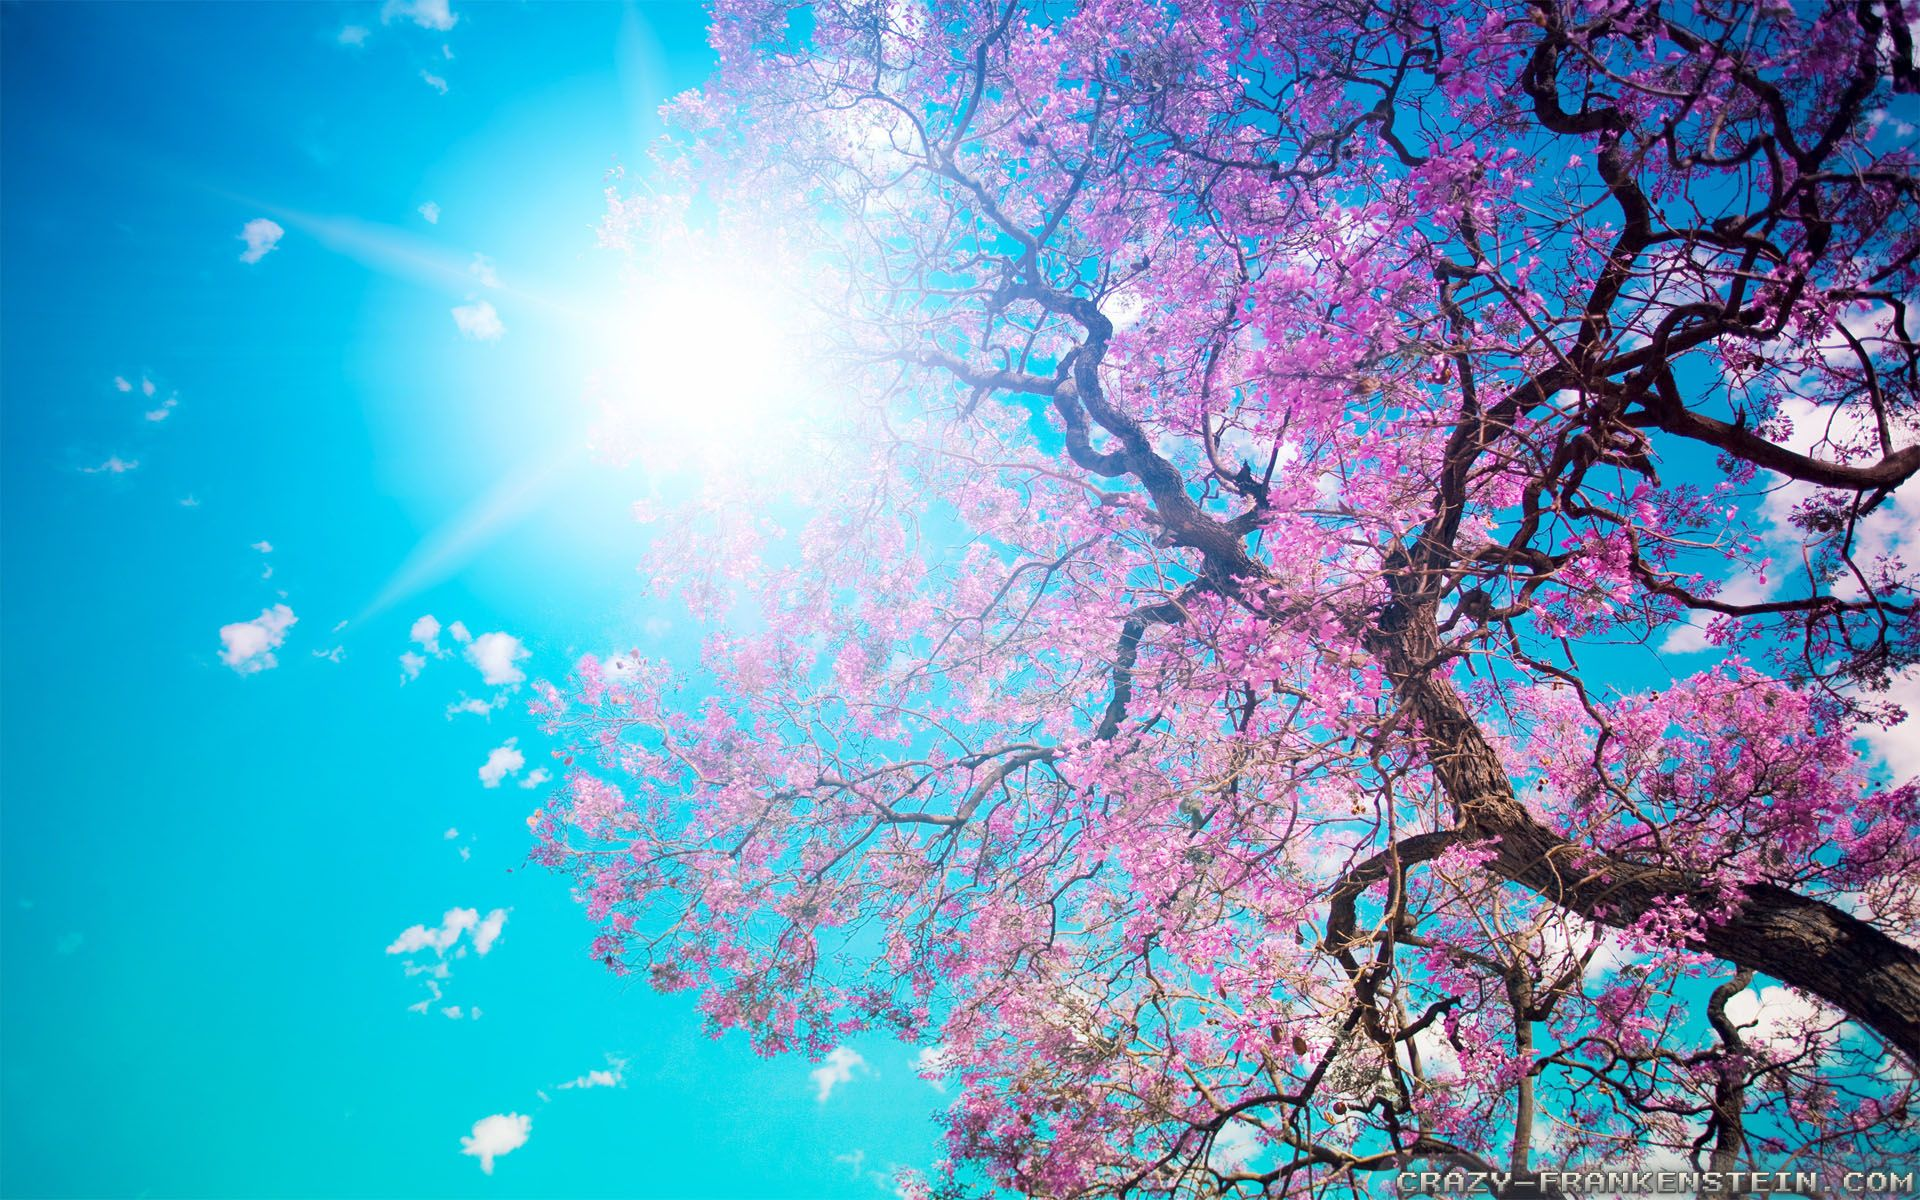 Best Images About Nature Wallpaper On Pinterest Nature Spring Wallpaper Beautiful Nature Spring Spring Pictures